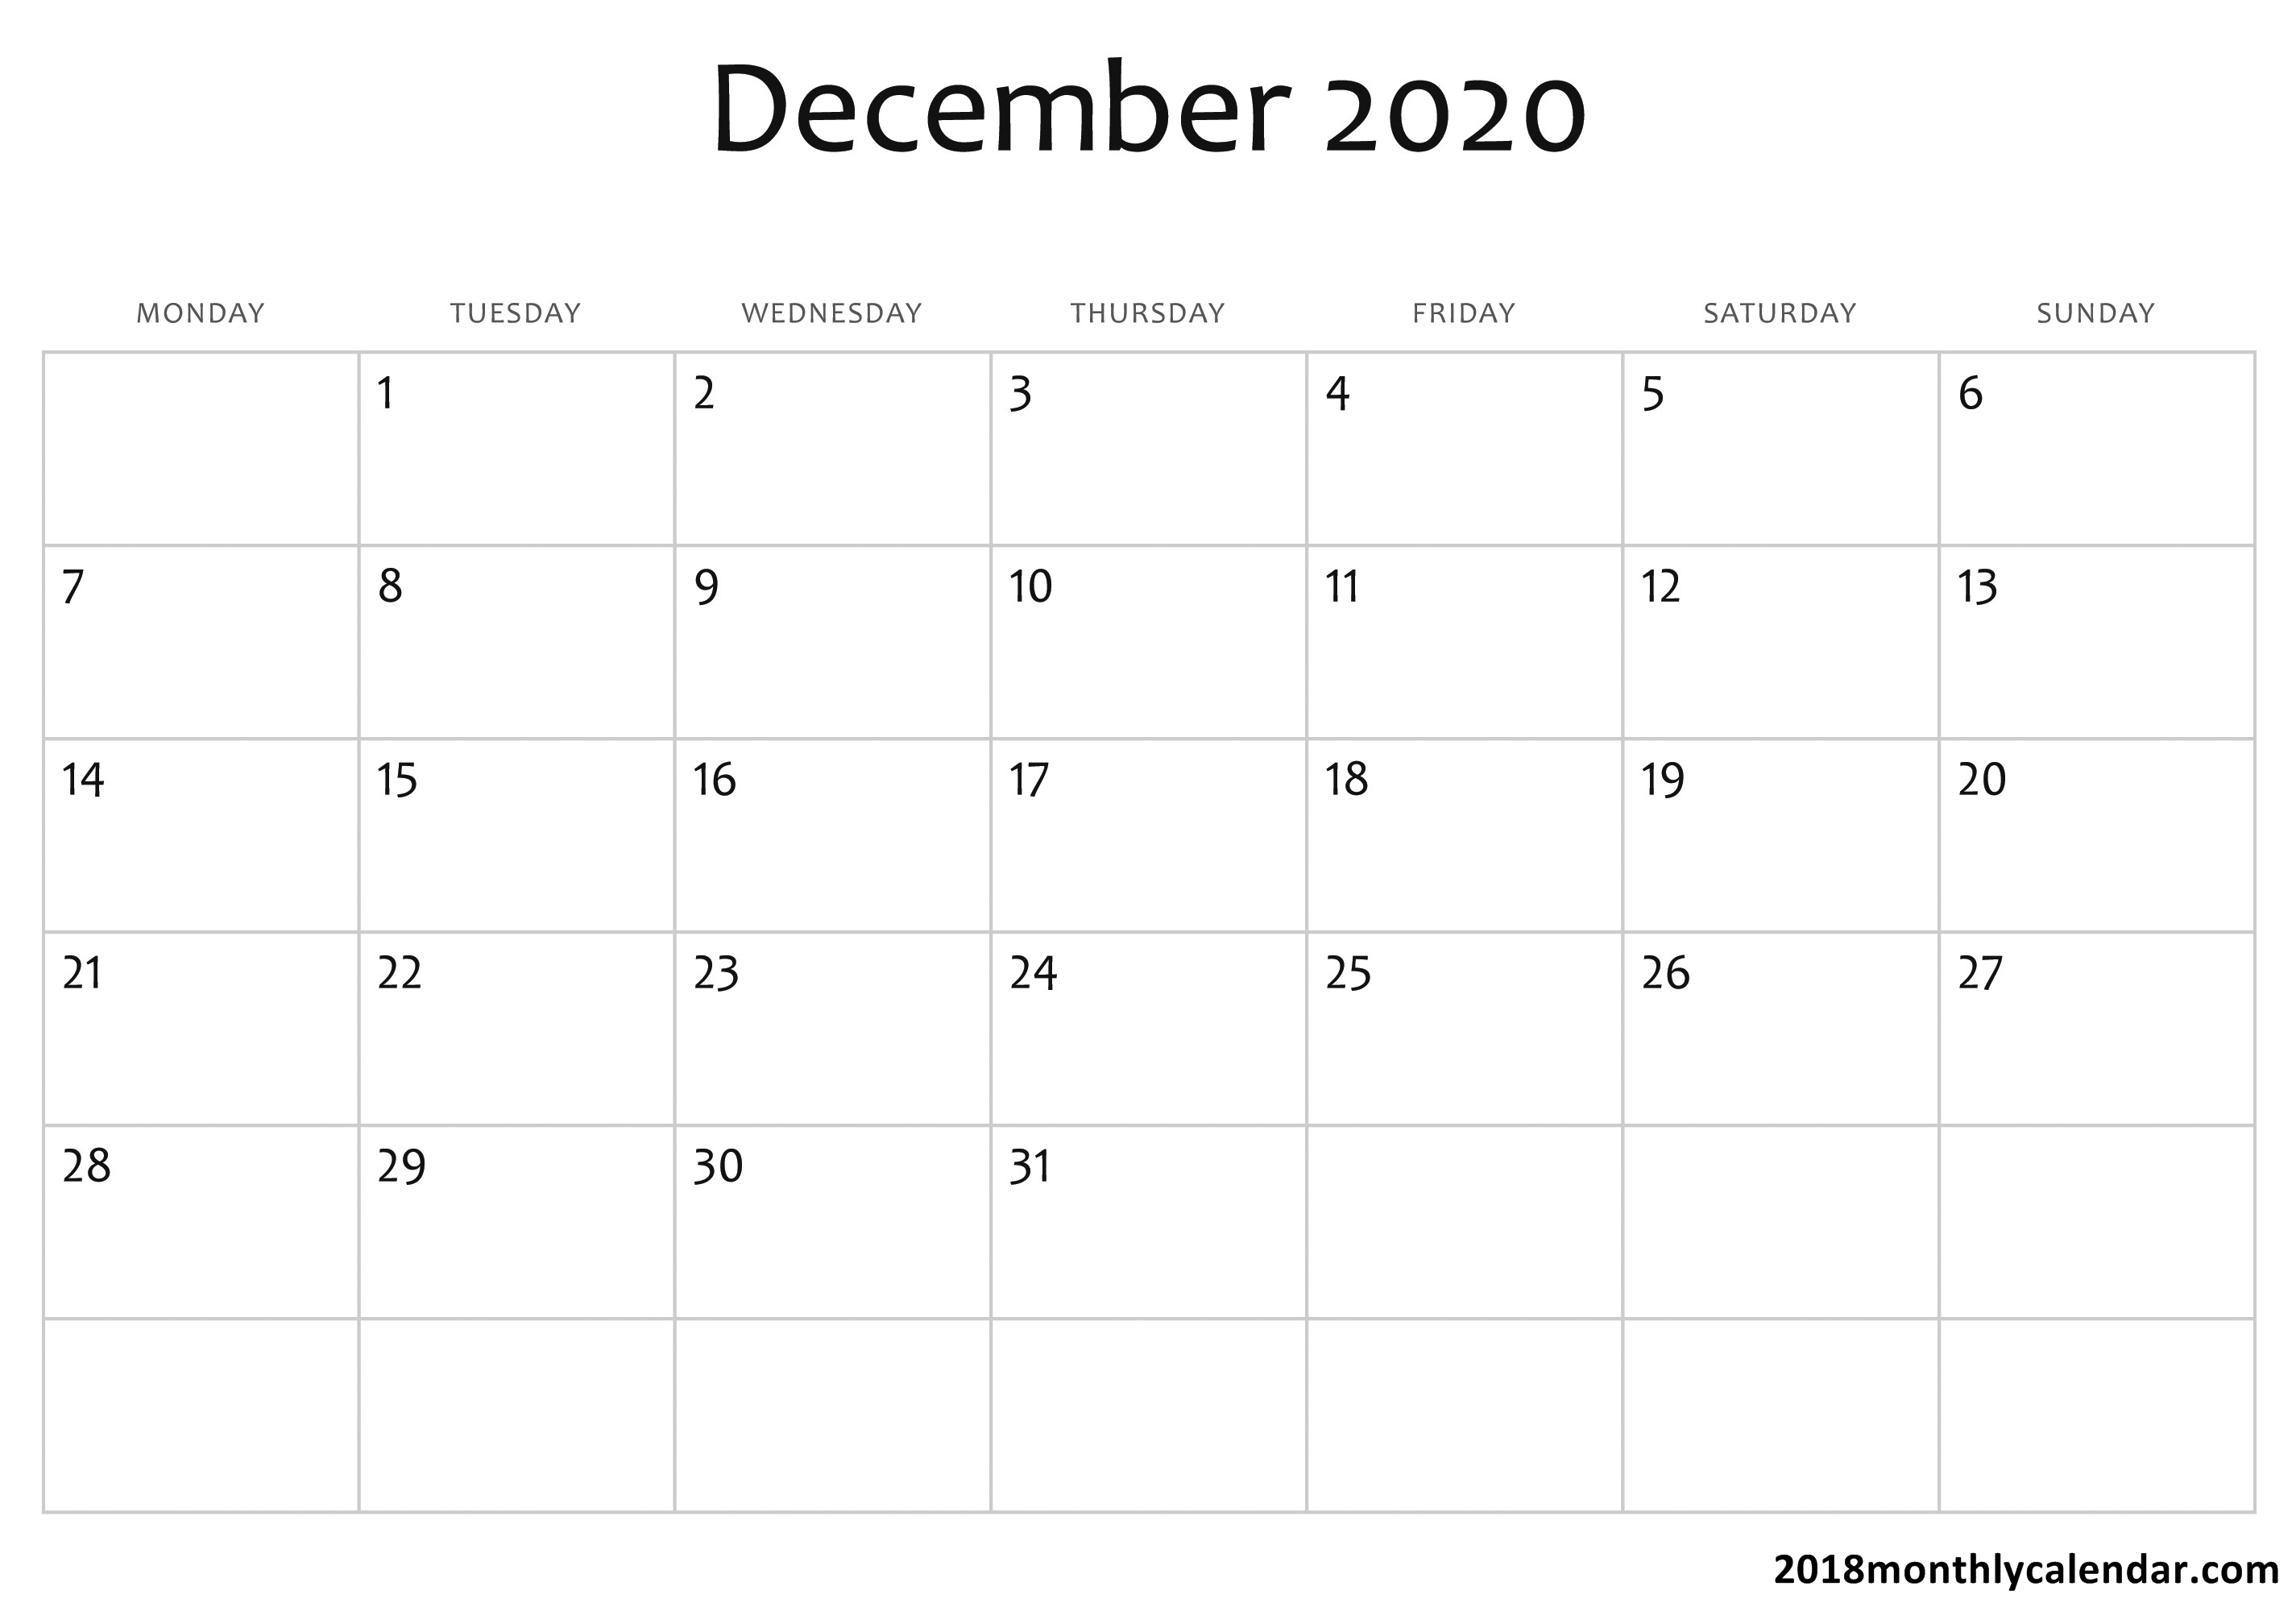 Download December 2020 Calendar – Blank & Editable in Printable 2020 Calendar I Can Edit